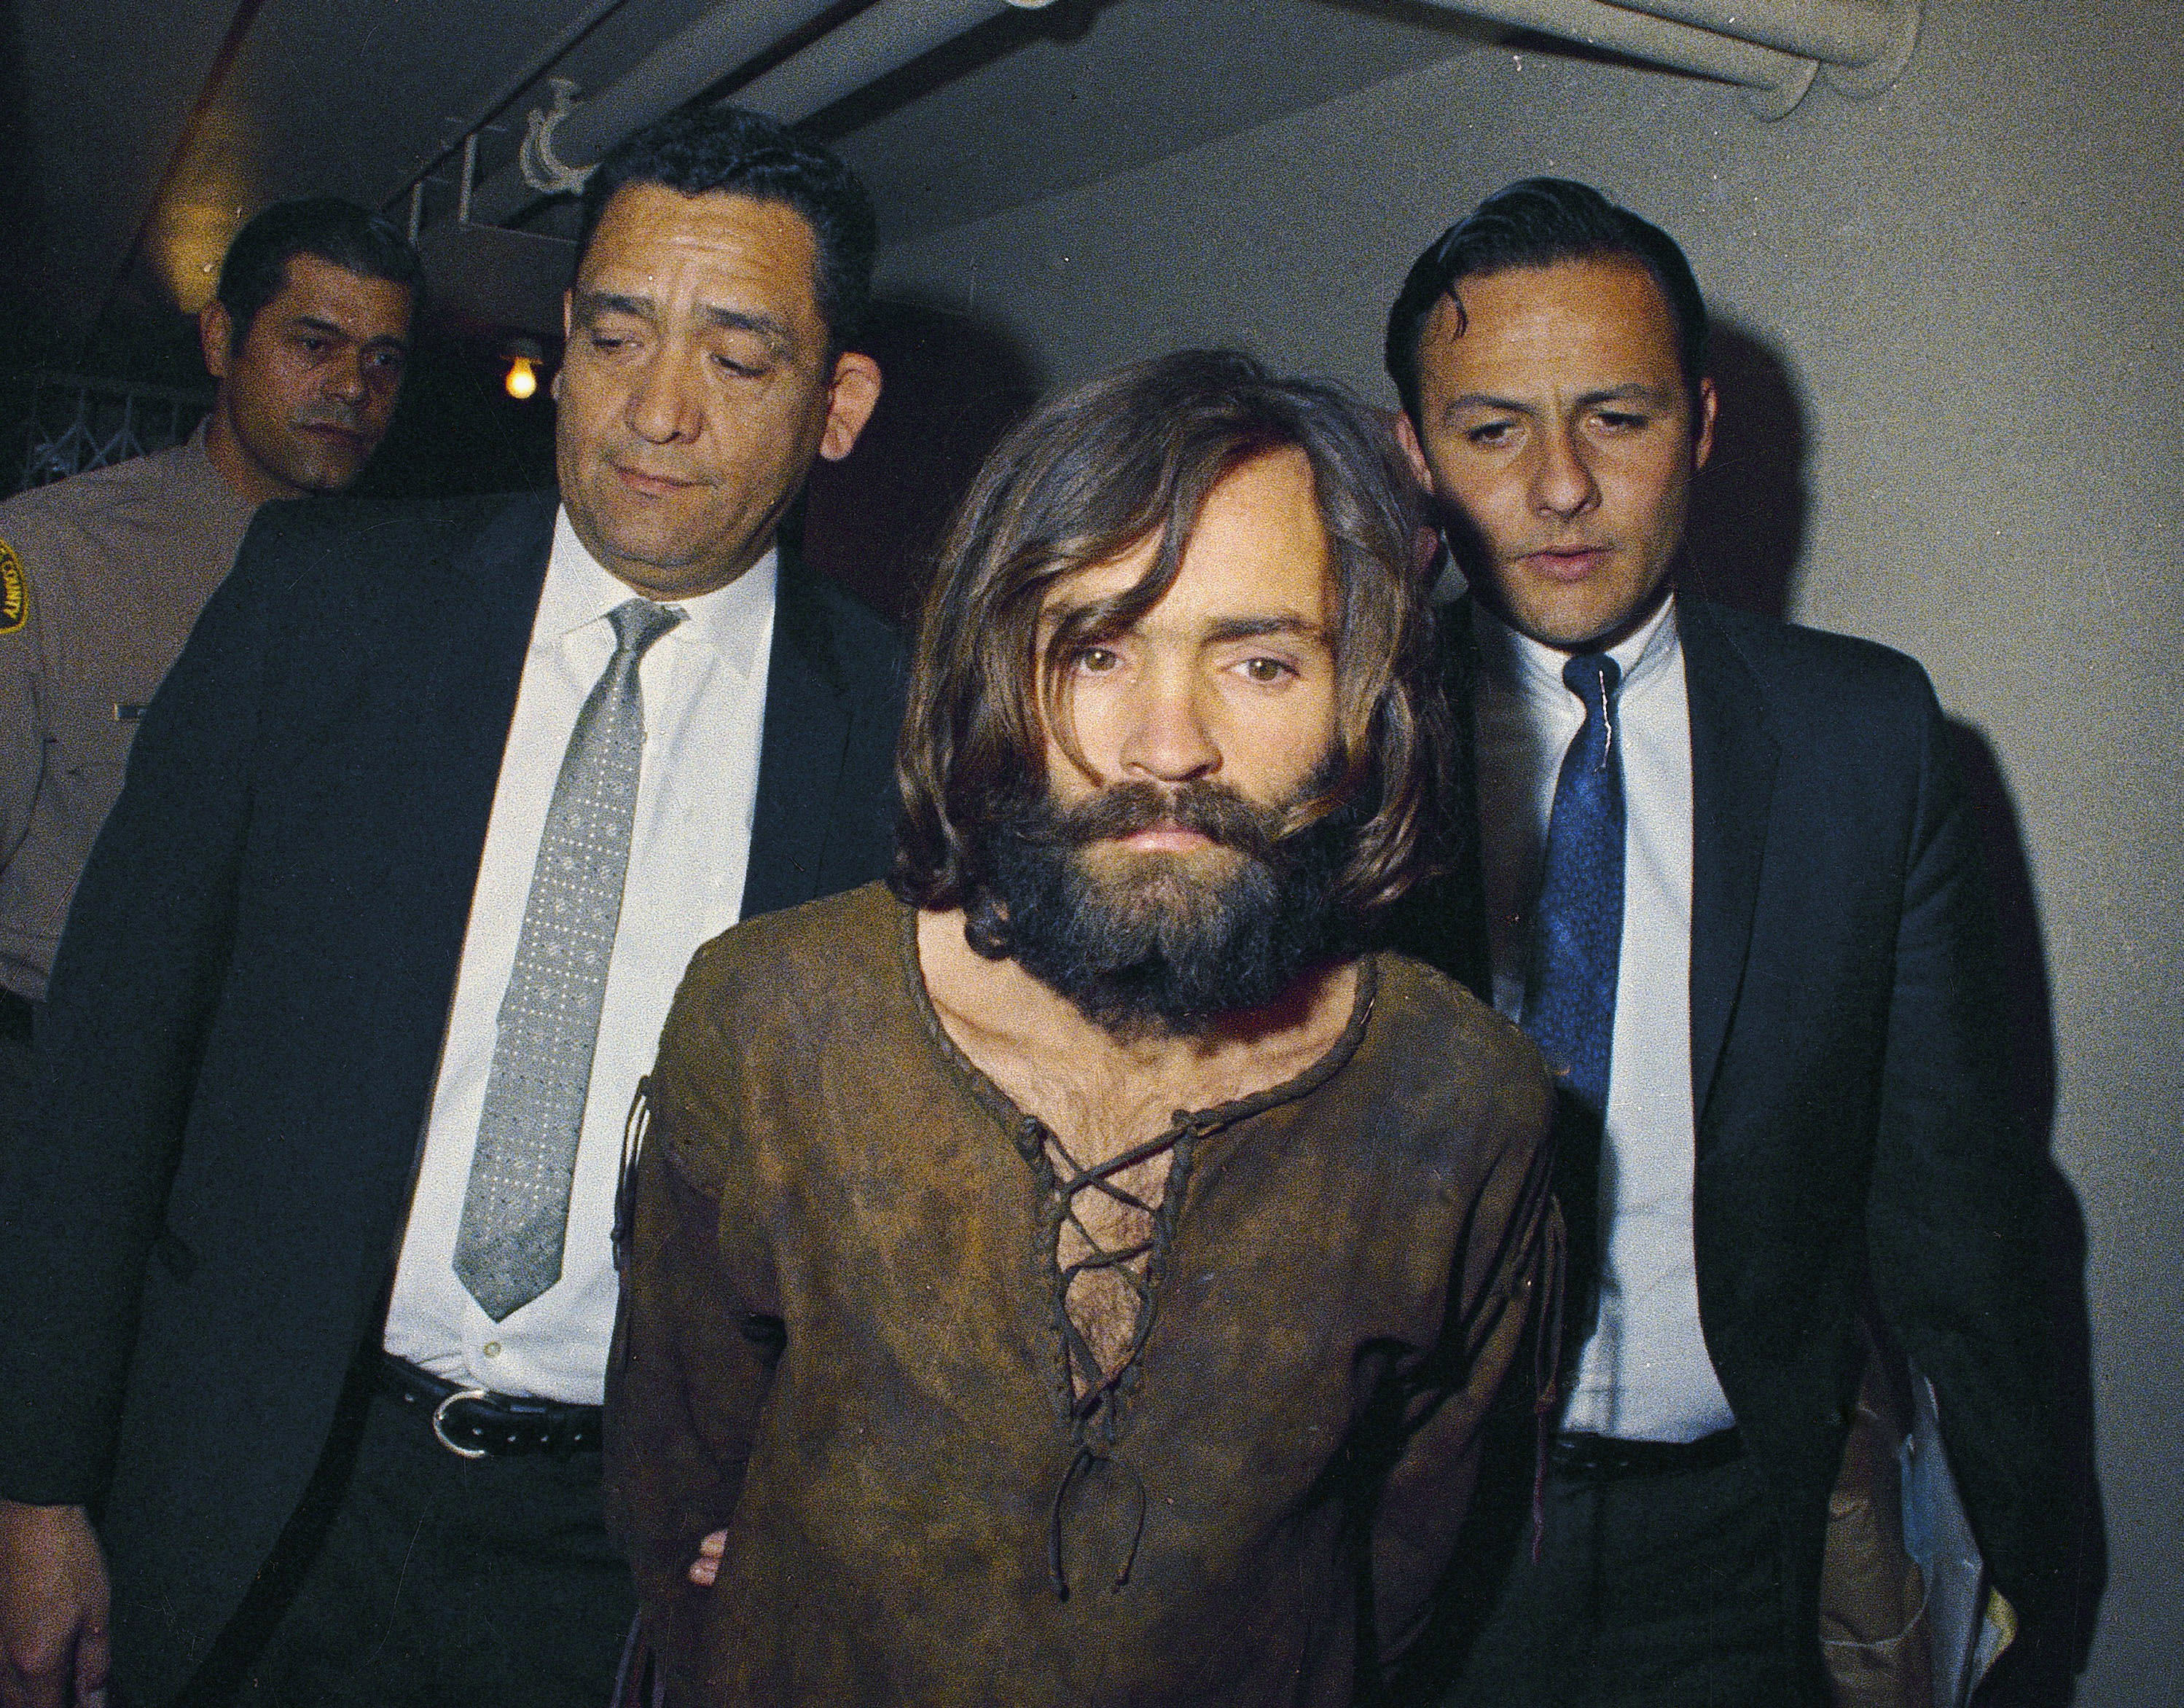 Charles Manson is escorted to his arraignment on conspiracy-murder charges in connection with the Sharon Tate murder case. (AP Photo, File)